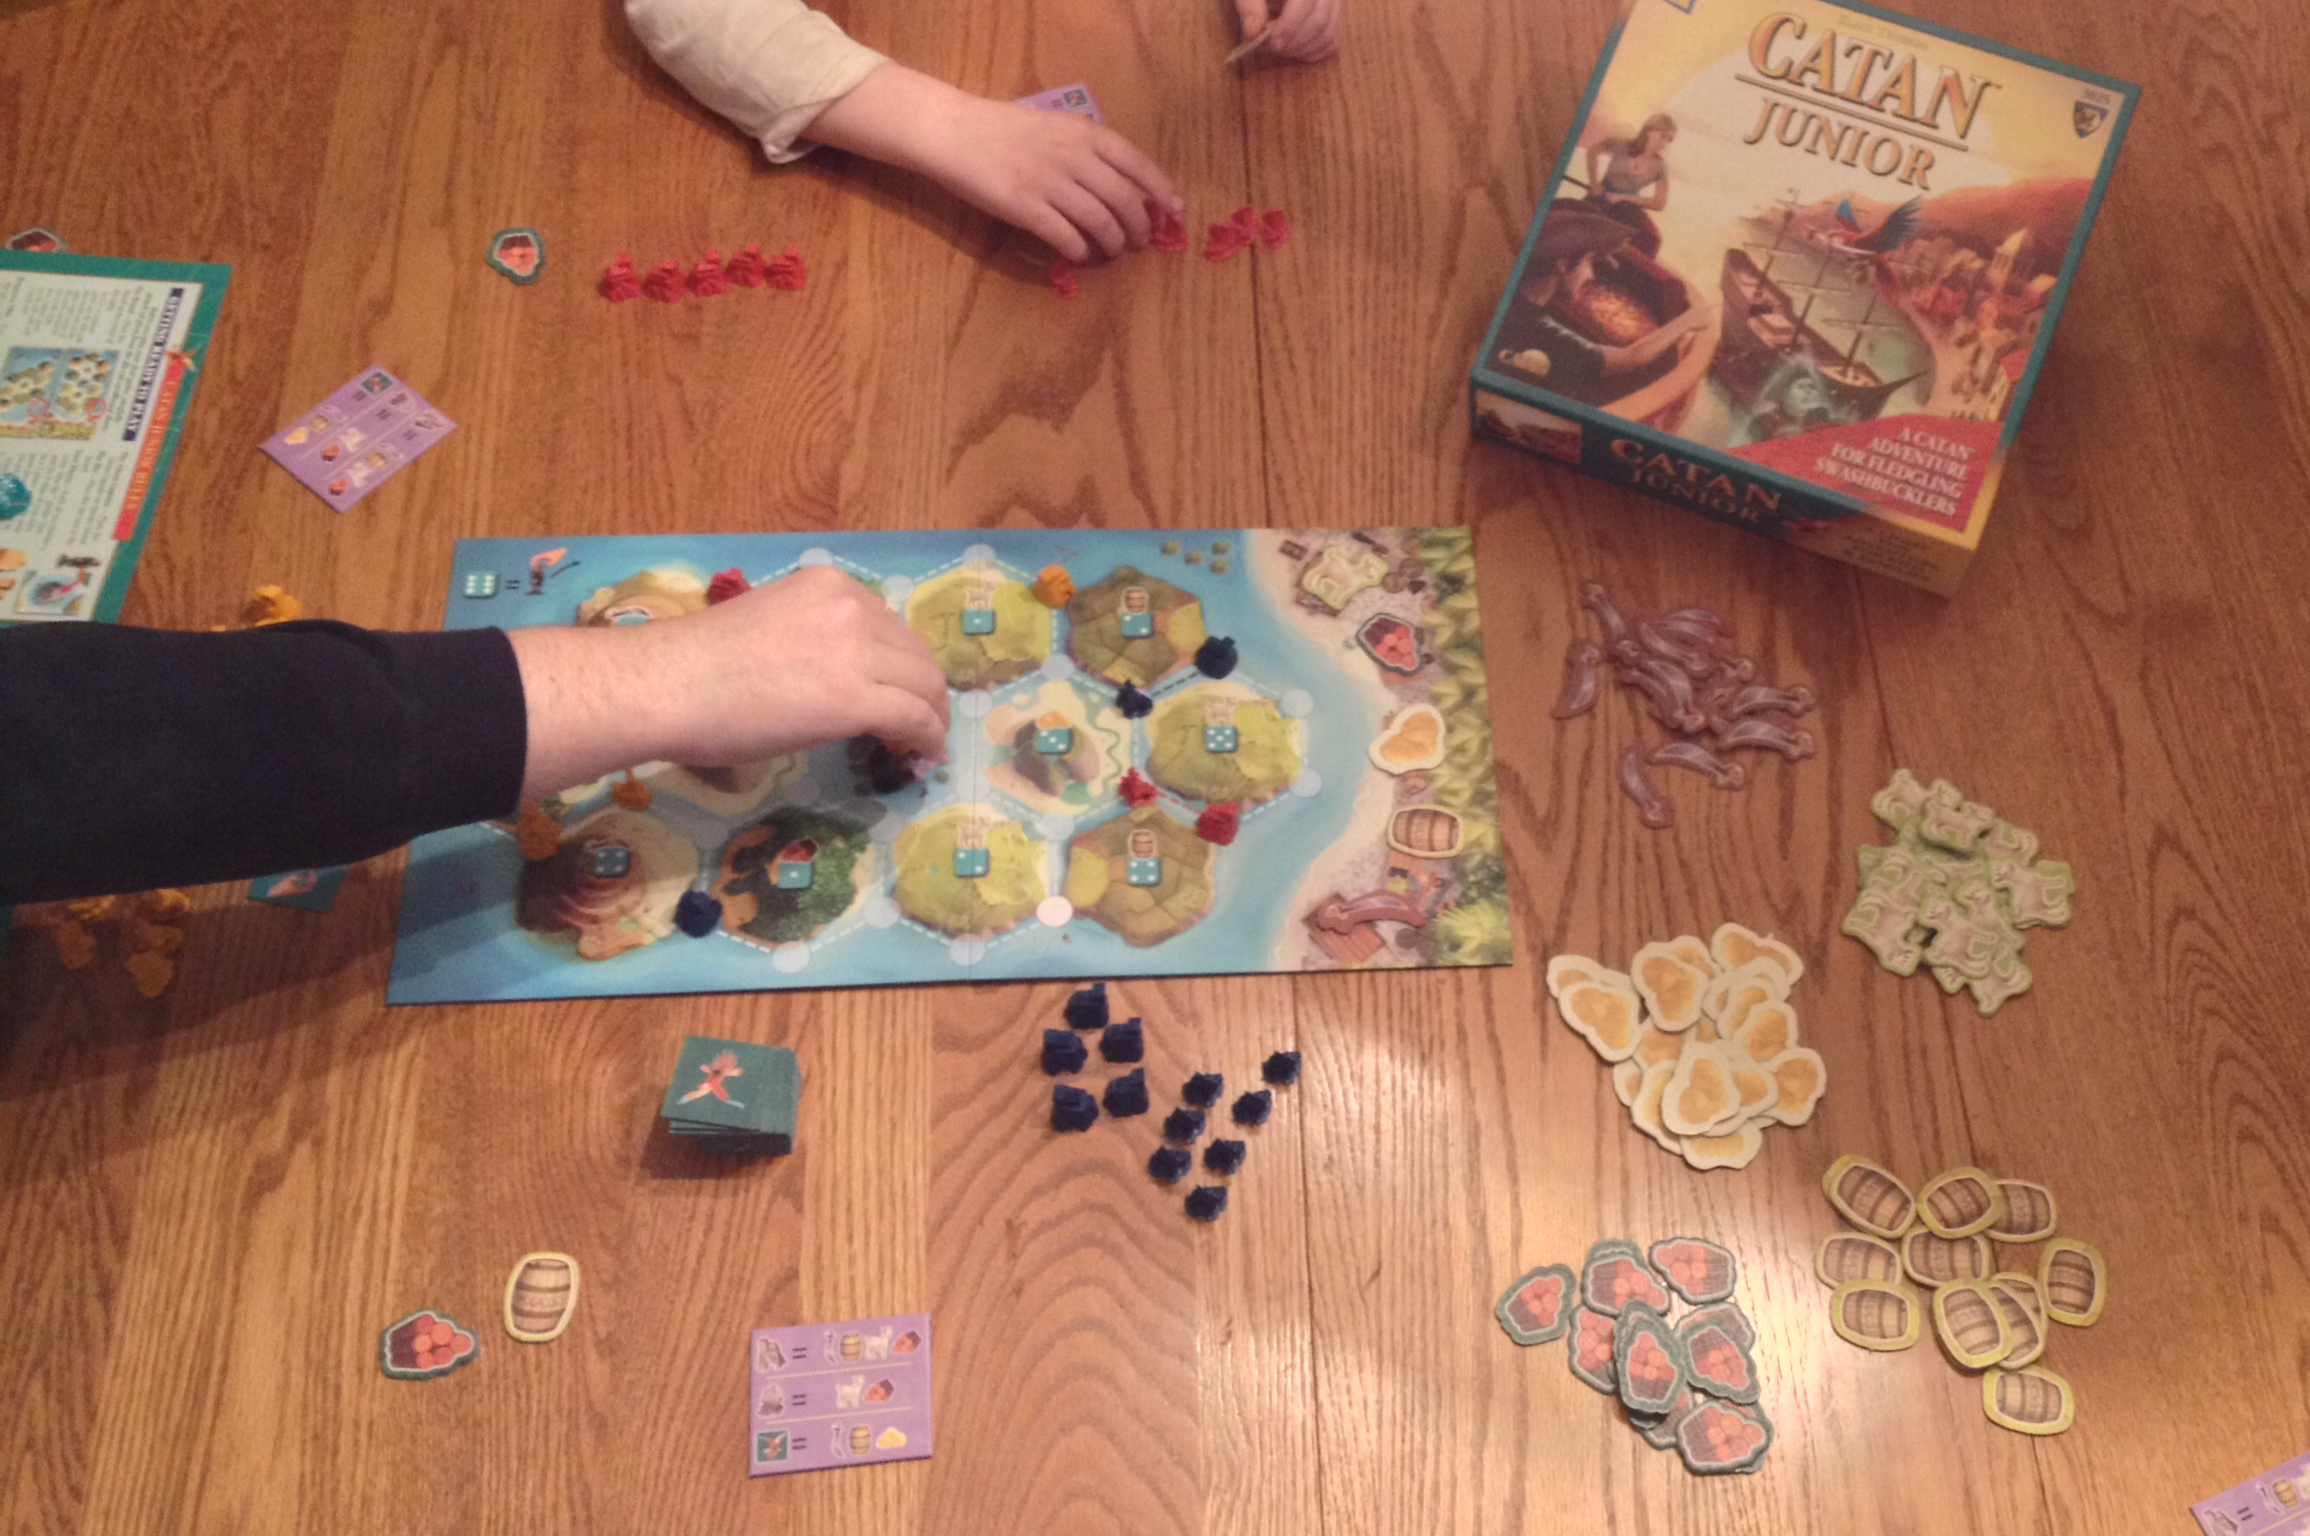 Celebrate Talk Like a Pirate Day with these Pirate Themed Board Games!